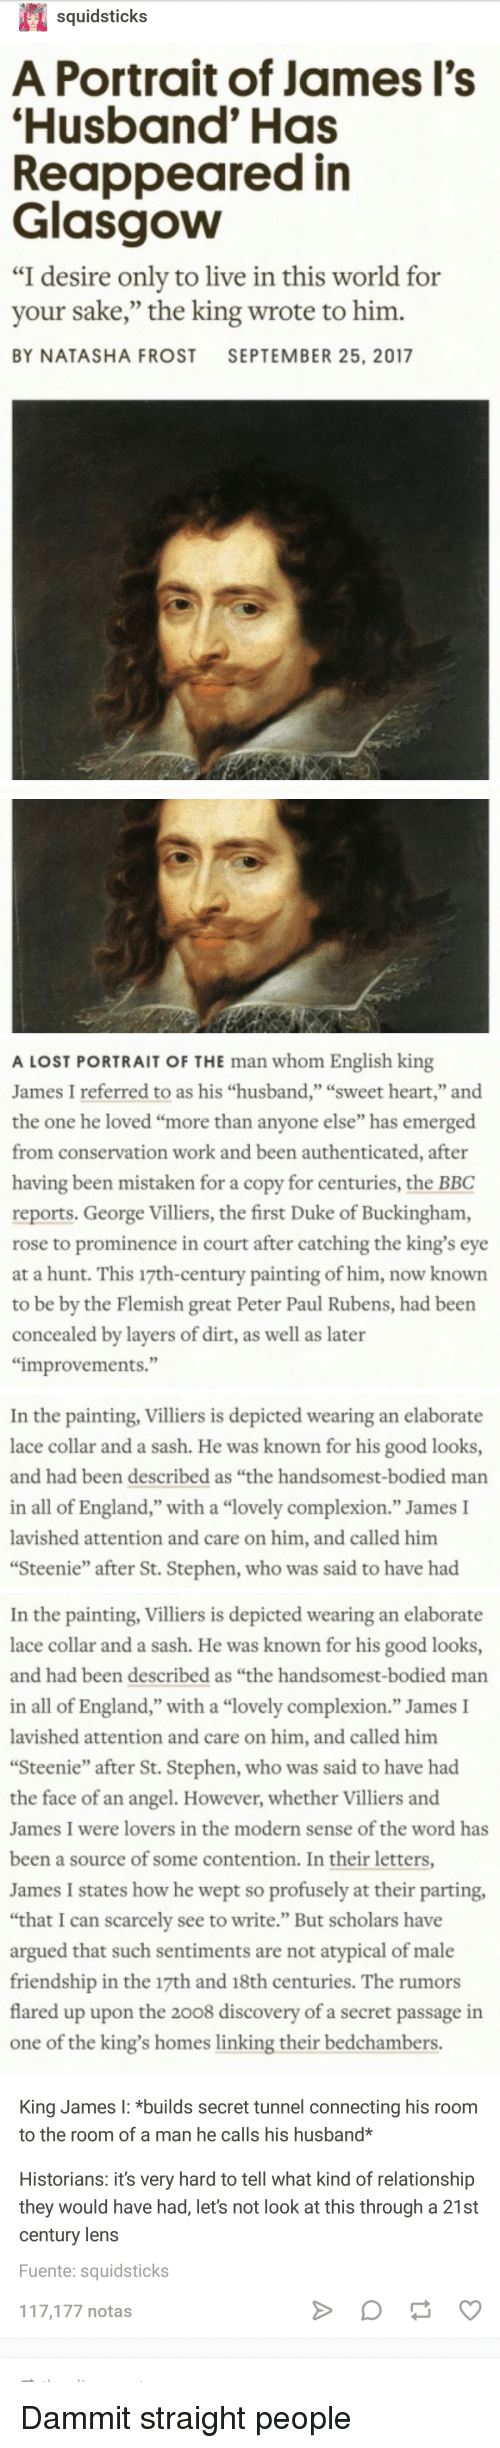 """England, Stephen, and Tumblr: squidsticks  A Portrait of James l's  Husband' Has  Reappeared in  Glasgow  """"I desire only to live in this world for  your sake,"""" the king wrote to him.  BY NATASHA FROST SEPTEMBER 25, 2017  0)   A LOST PORTRAIT OF THE man whom English king  James I referred to as his """"husband,"""" """"sweet heart,"""" and  the one he loved """"more than anyone else"""" has emerged  from conservation work and been authenticated, after  having been mistaken for a copy for centuries, the BBC  reports, George Villiers, the first Duke of Buckingham,  rose to prominence in court after catching the king's eye  at a hunt. This 17th-century painting of him, now known  to be by the Flemish great Peter Paul Rubens, had been  concealed by layers of dirt, as well as later  improvements.""""  In the painting, Villiers is depicted wearing an elaborate  lace collar and a sash. He was known for his good looks,  and had been described as """"the handsomest-bodied marn  in all of England,"""" with a """"lovely complexion."""" James I  lavished attention and care on him, and called him  Steenie"""" after St. Stephen, who was said to have had   In the painting, Villiers is depicted wearing an elaborate  lace collar and a sash. He was known for his good looks,  and had been described as """"the handsomest-bodied man  in all of England,"""" with a """"lovely complexion."""" James I  lavished attention and care on him, and called him  Steenie"""" after St. Stephen, who was said to have had  the face of an angel. However, whether Villiers and  James I were lovers in the modern sense of the word has  been a source of some contention. In their letters  James I states how he wept so profusely at their parting,  """"that I can scarcely see to write."""" But scholars have  argued that such sentiments are not atypical of male  friendship in the 17th and 18th centuries. The rumors  flared up upon the 2008 discovery of a secret passage in  one of the king's homes linking their bedchambers  King James I: *builds secret tunnel connecting h"""